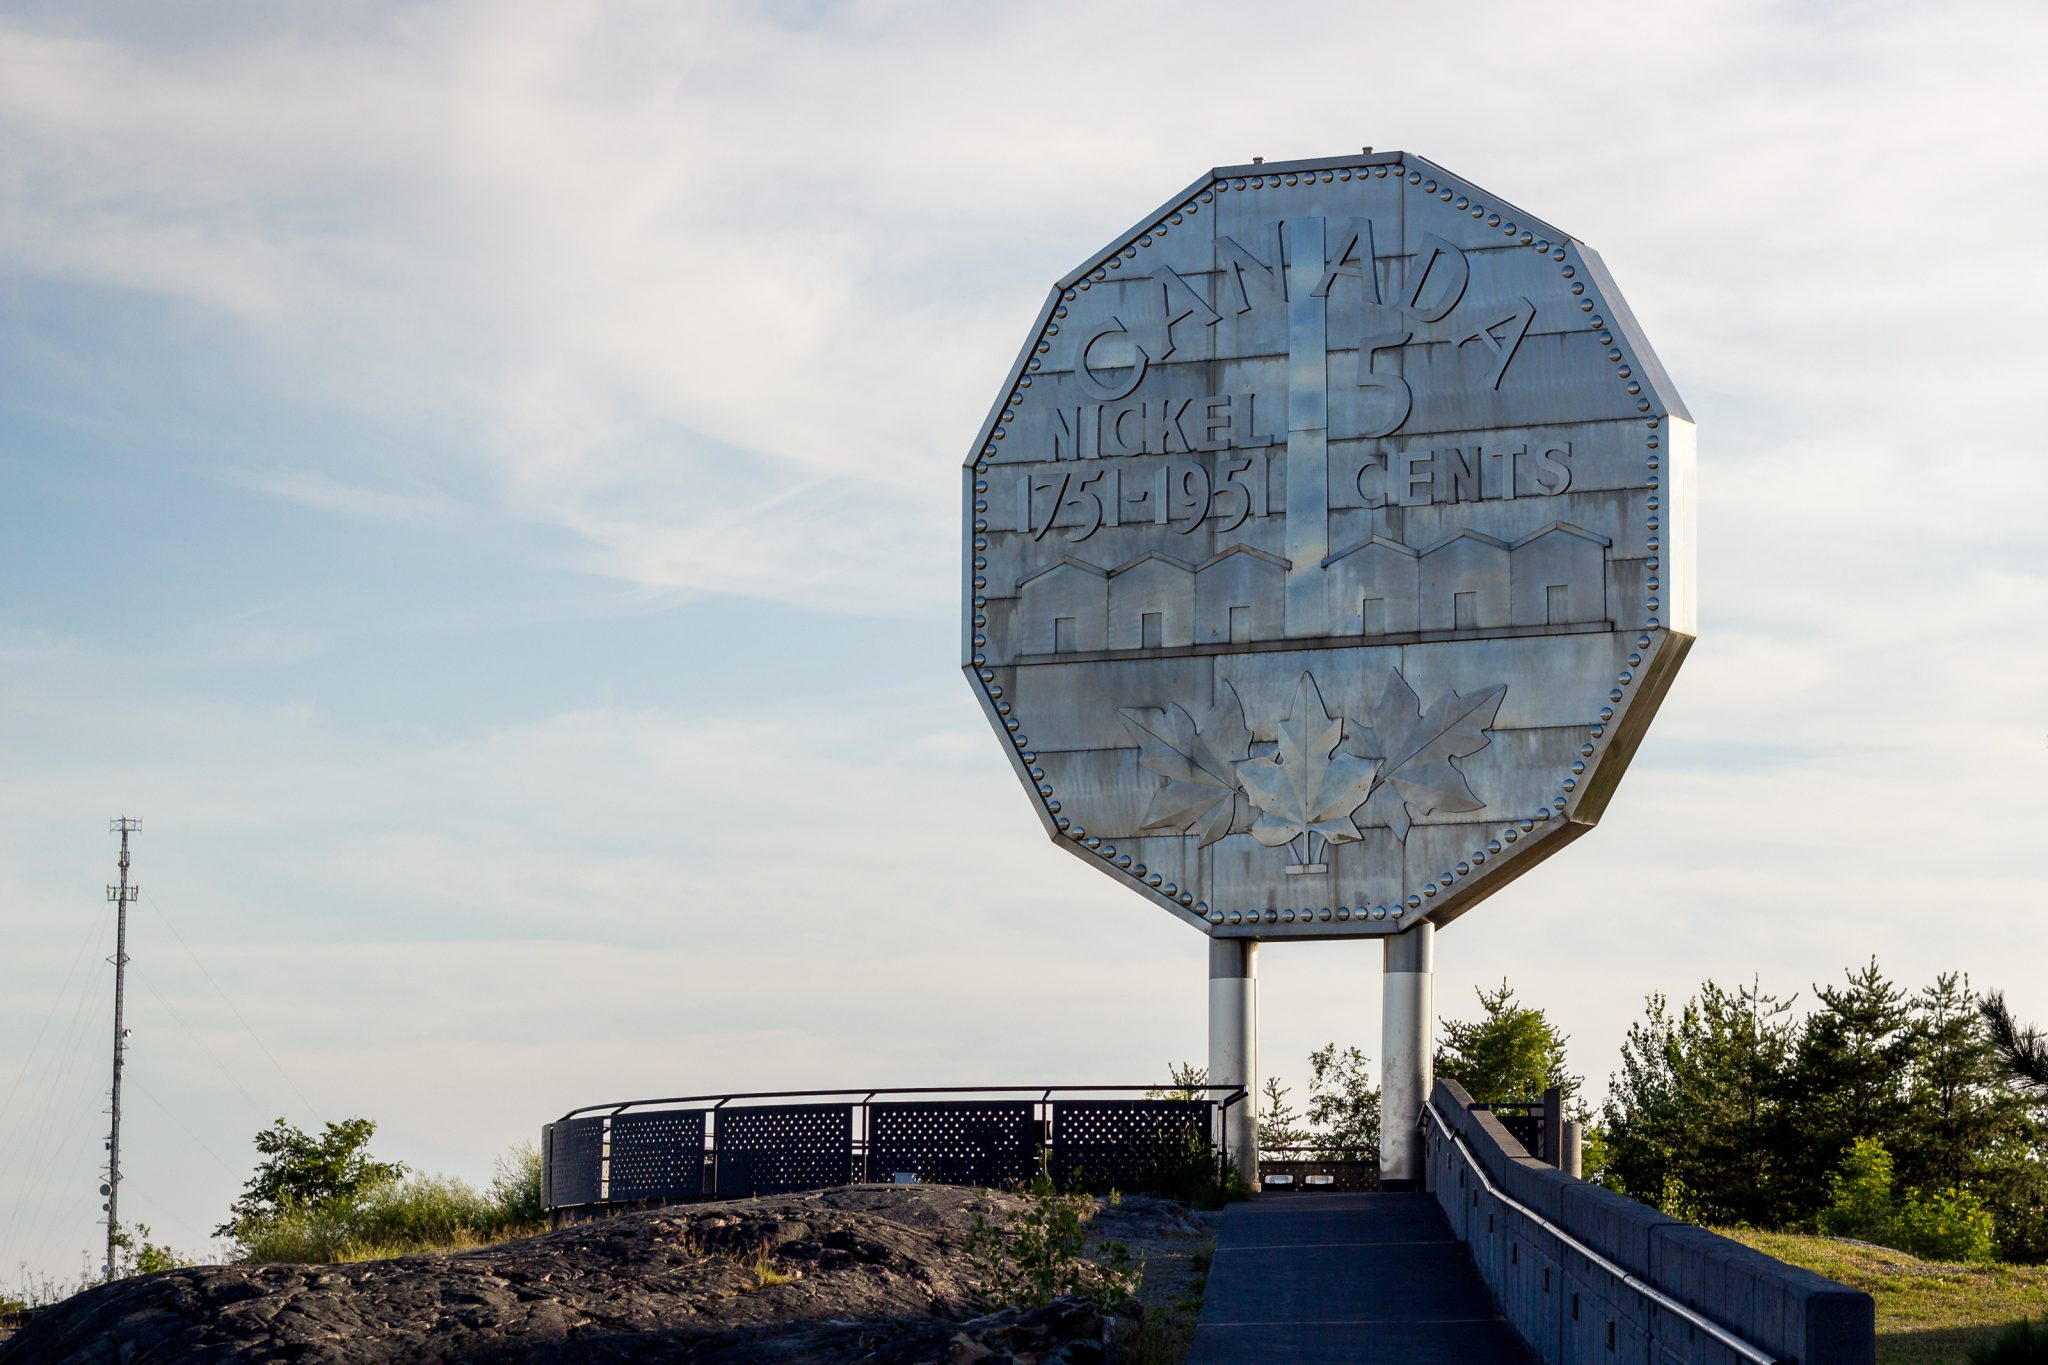 An image of The Big Nickel, a nine-metre (30 ft) replica of a 1951 Canadian nickel, located at the grounds of the Dynamic Earth science museum in Sudbury, Ontario.